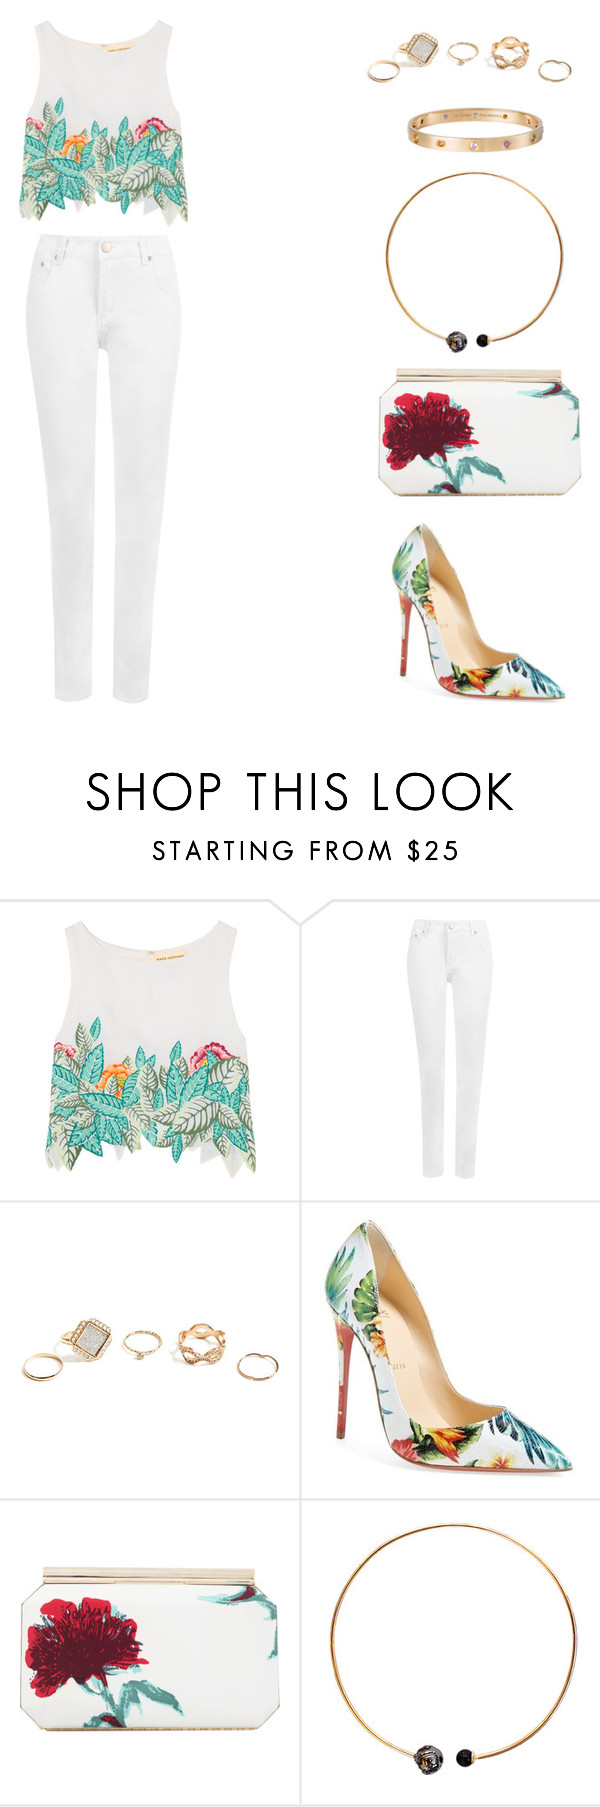 """""""the one that got away {katy perry}"""" by balsam01 ❤ liked on Polyvore featuring Mara Hoffman, WearAll, GUESS, Christian Louboutin, Oscar de la Renta, Artelier by Cristina Ramella and Cartier"""